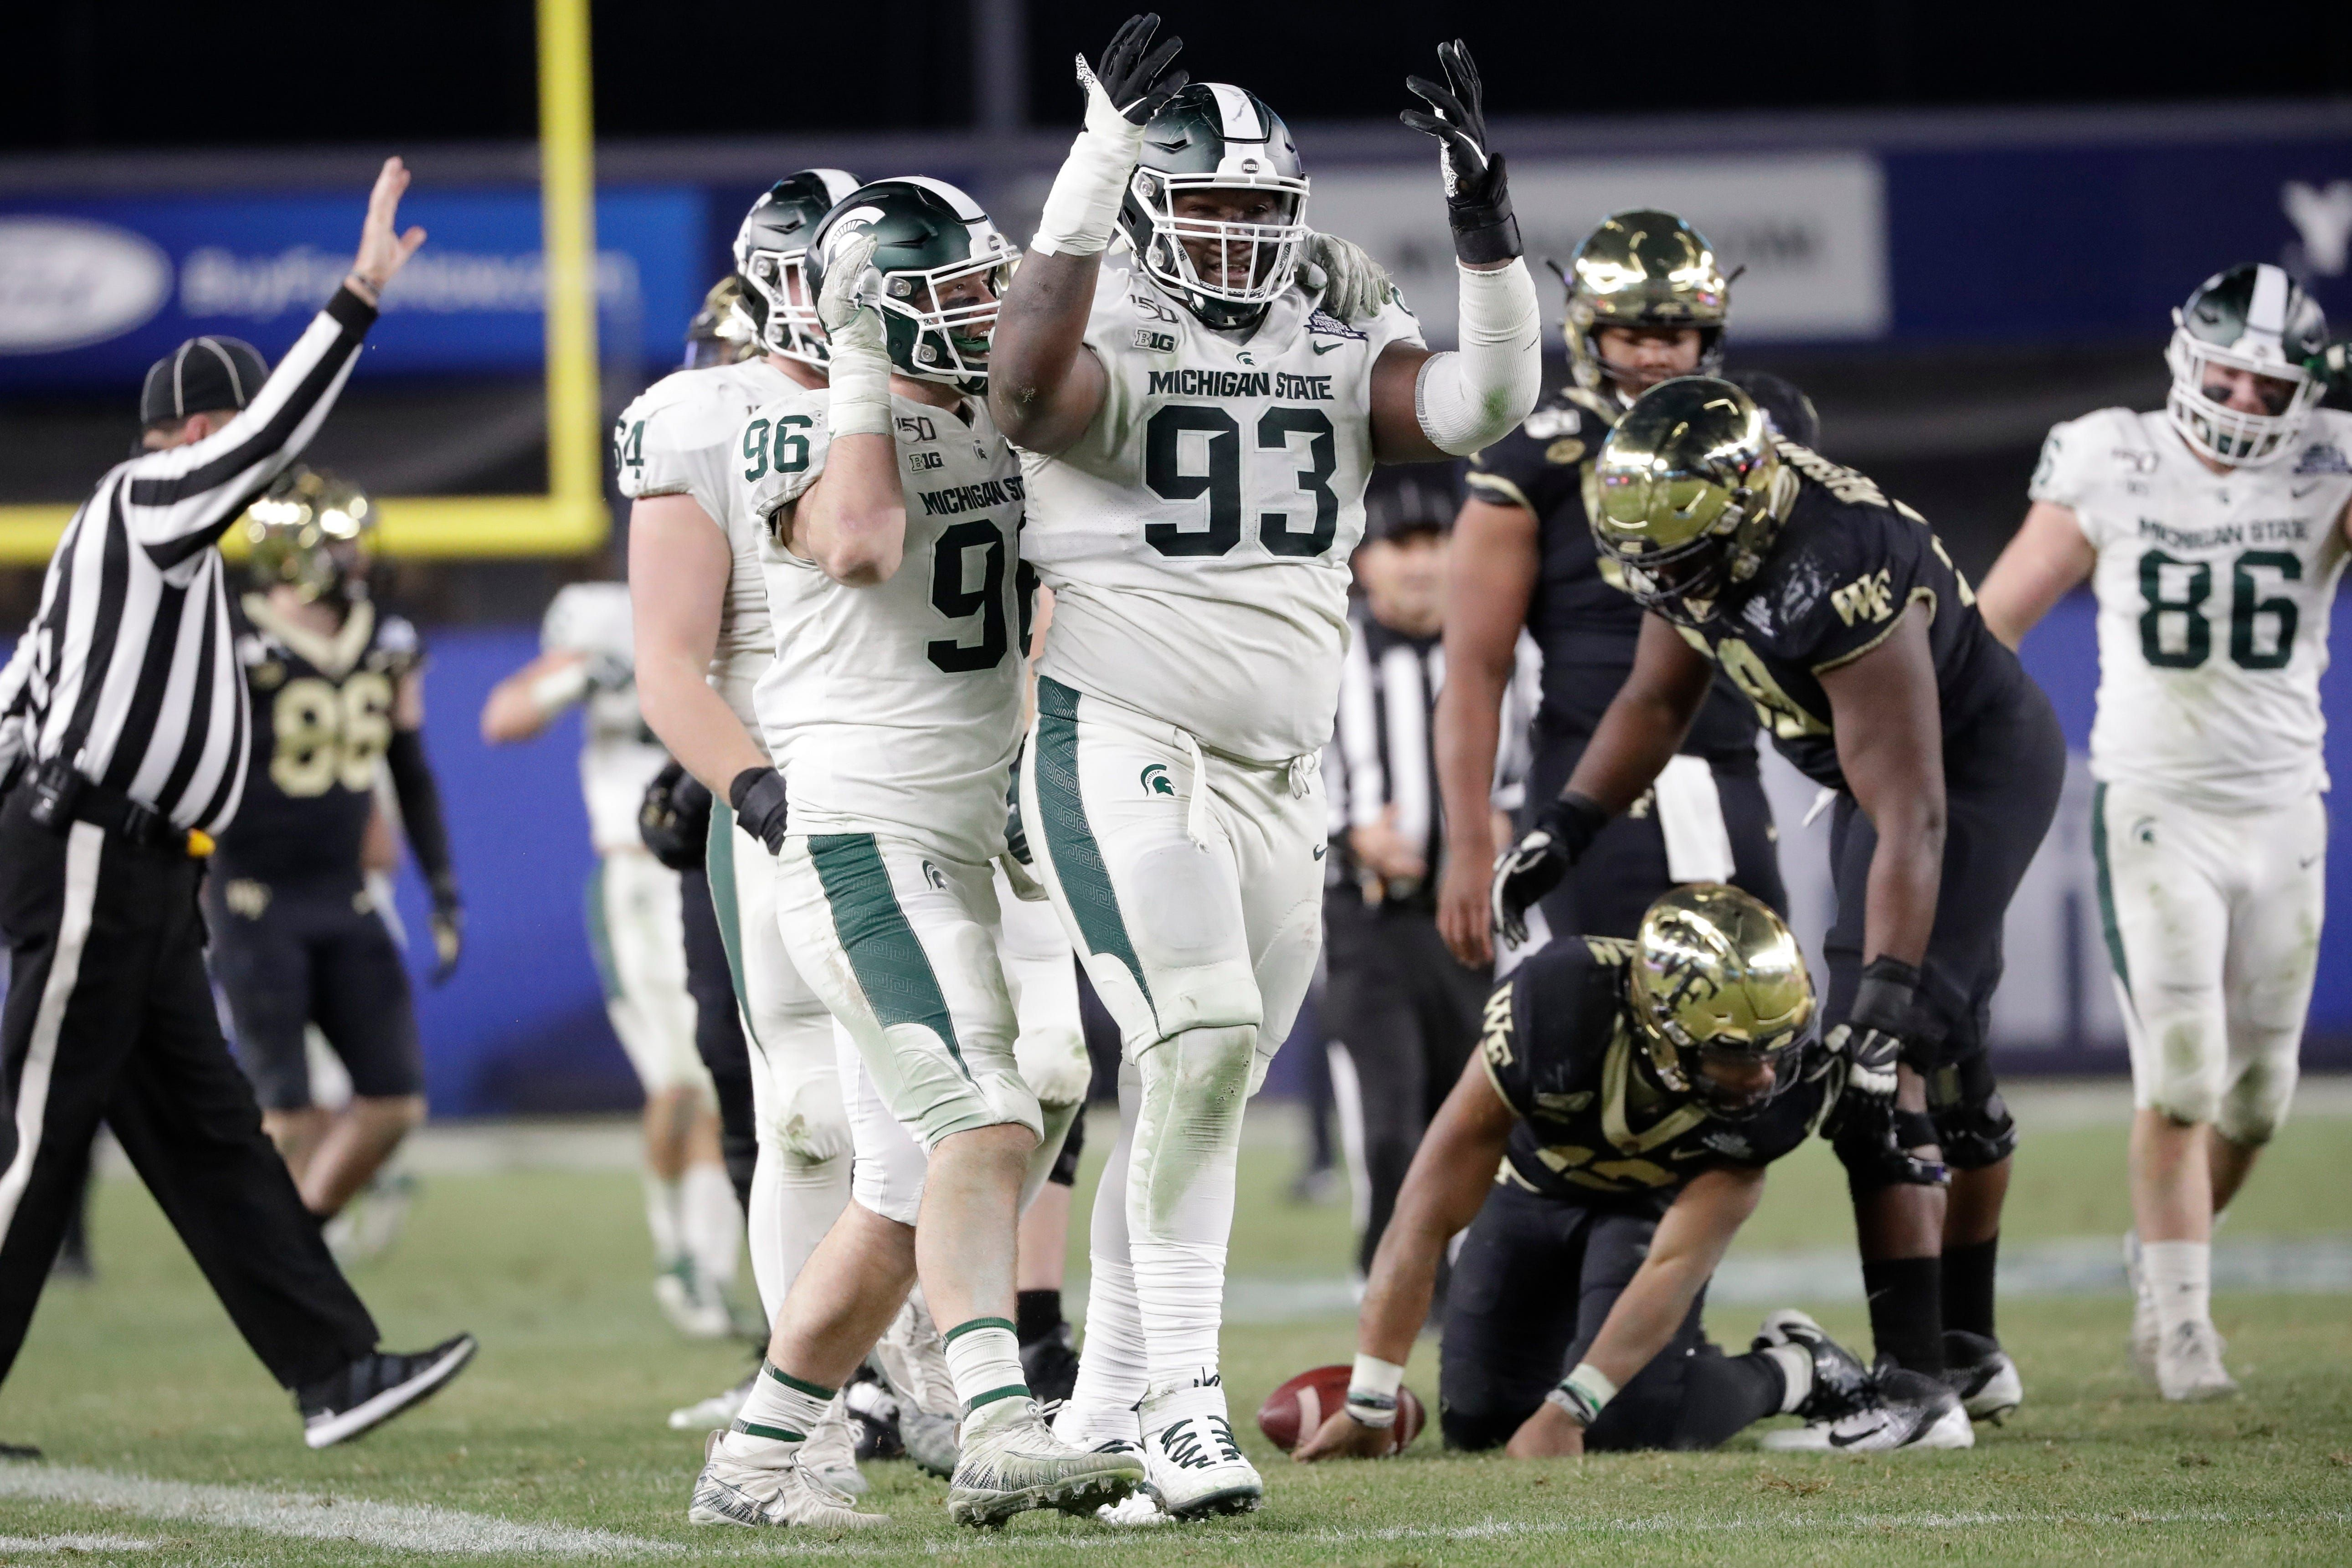 Michigan State Football What We Learned In 2019 What To Watch In 2020 Michigan State Football Michigan State Michigan